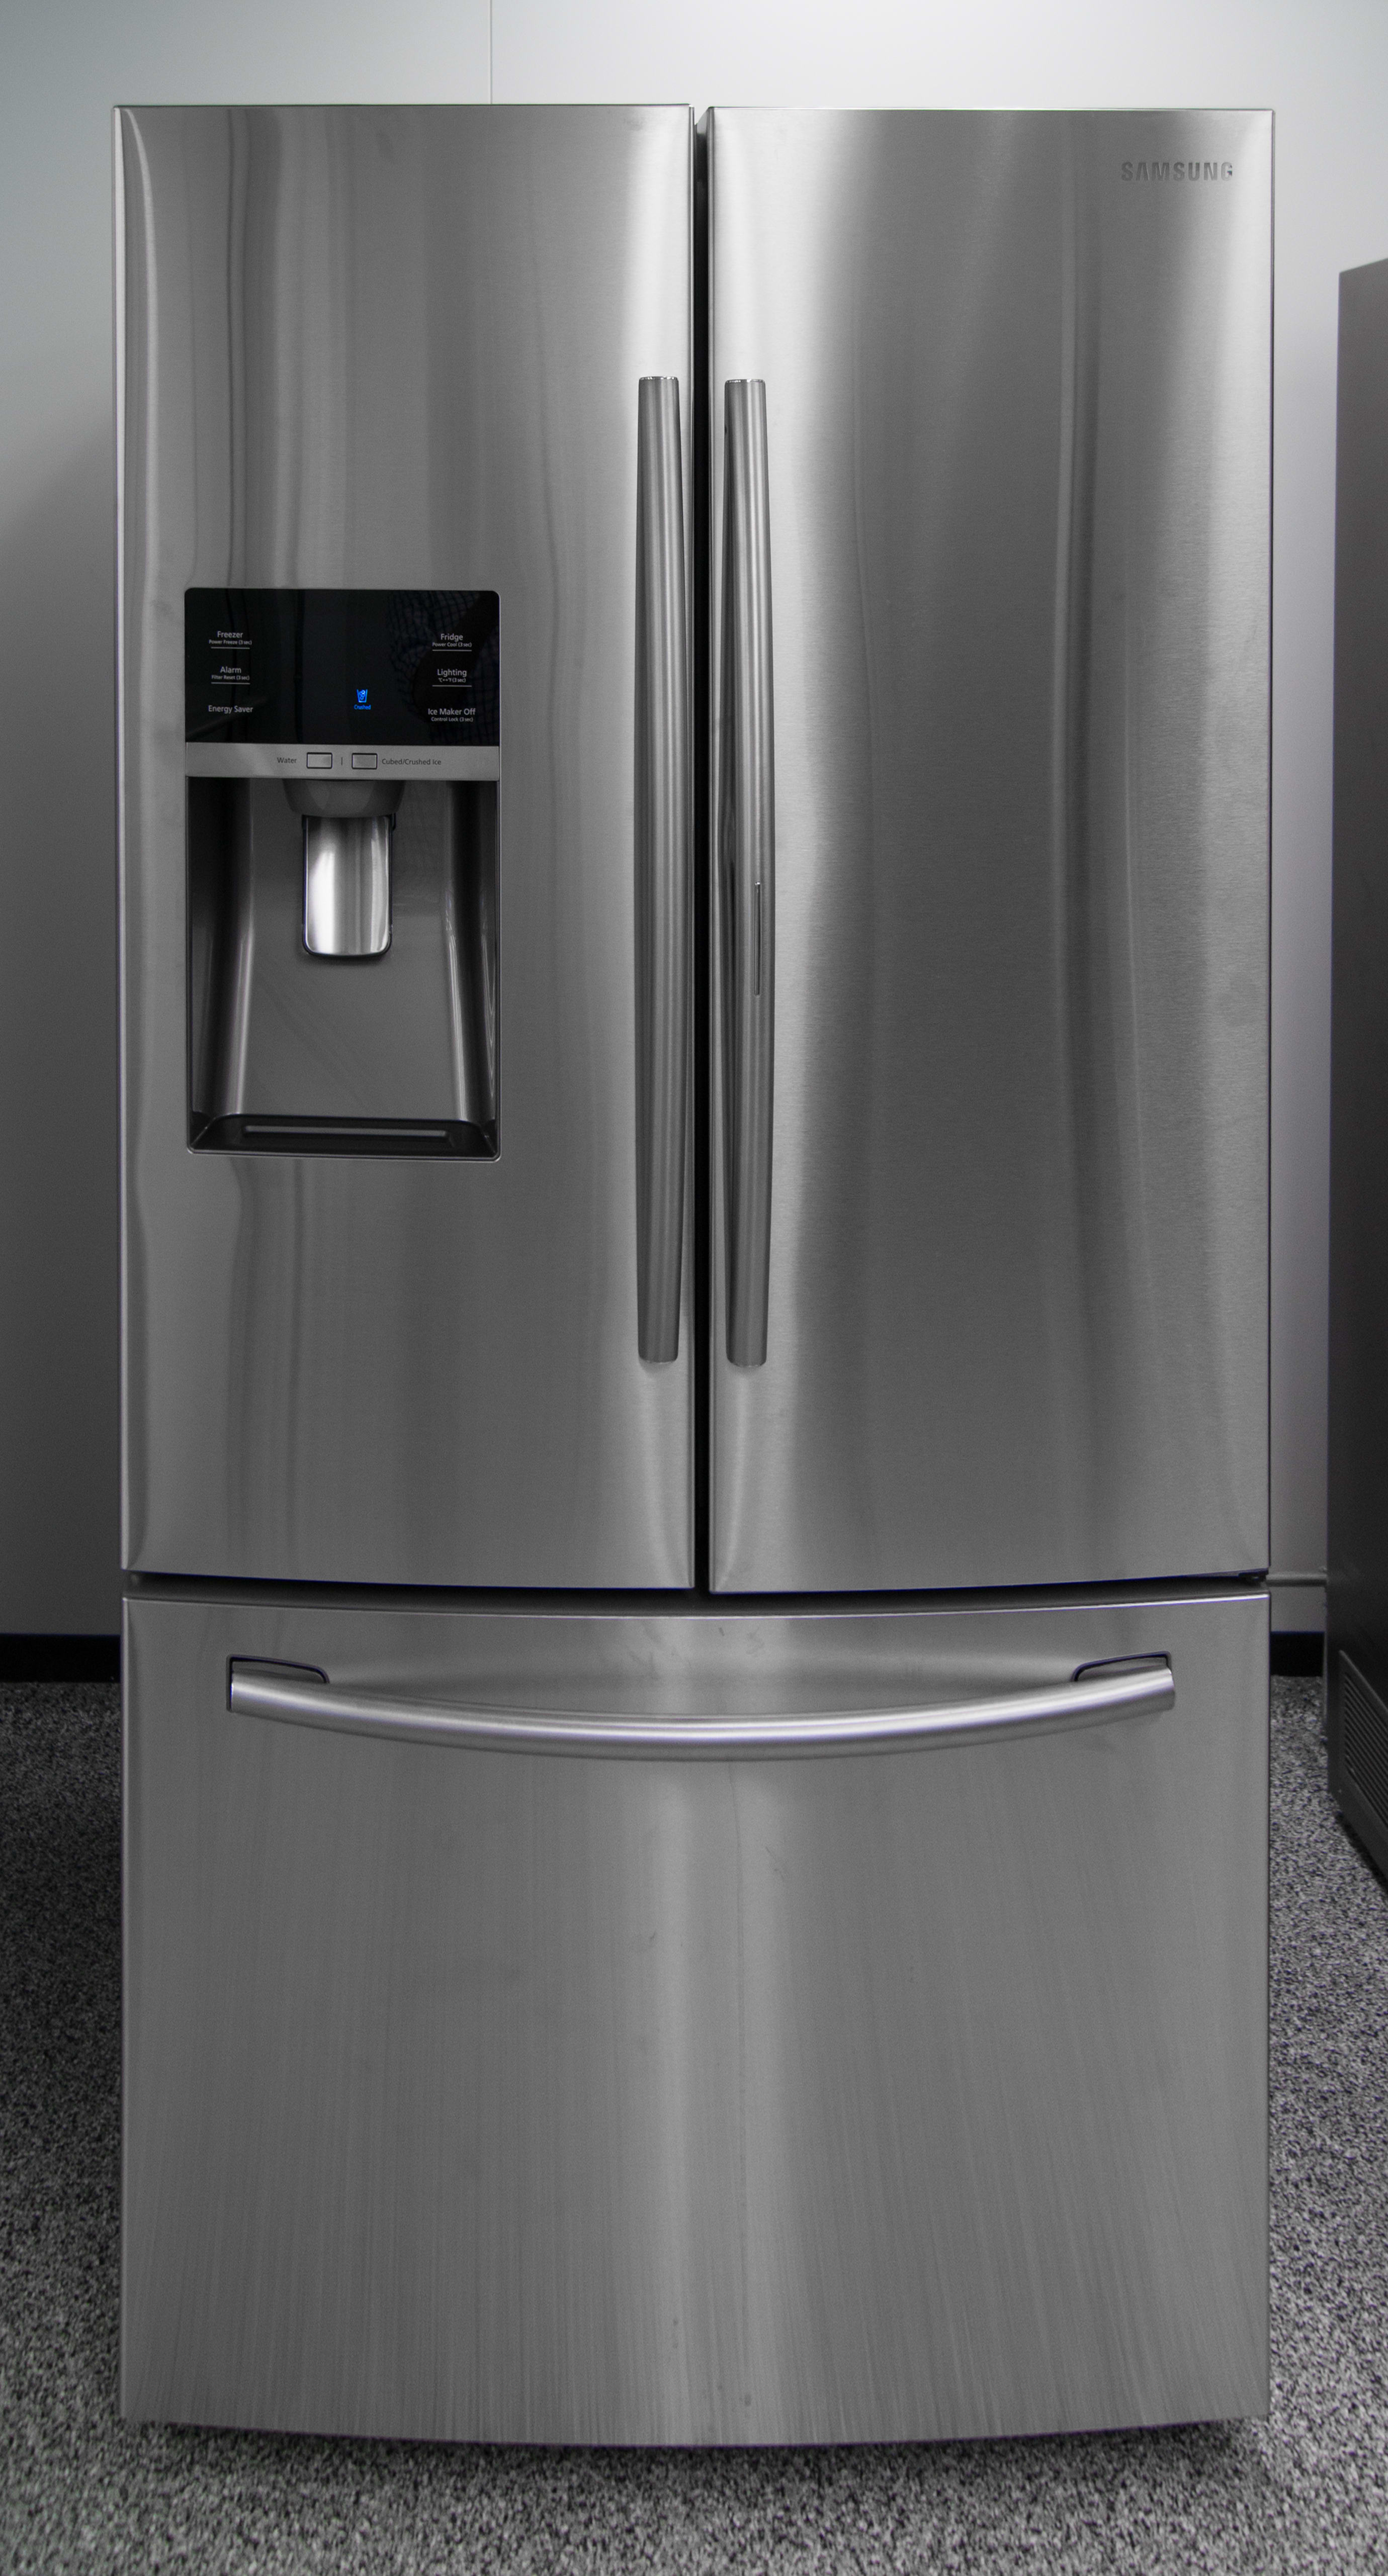 Samsung rf28hdedbsr refrigerator review for High end french doors